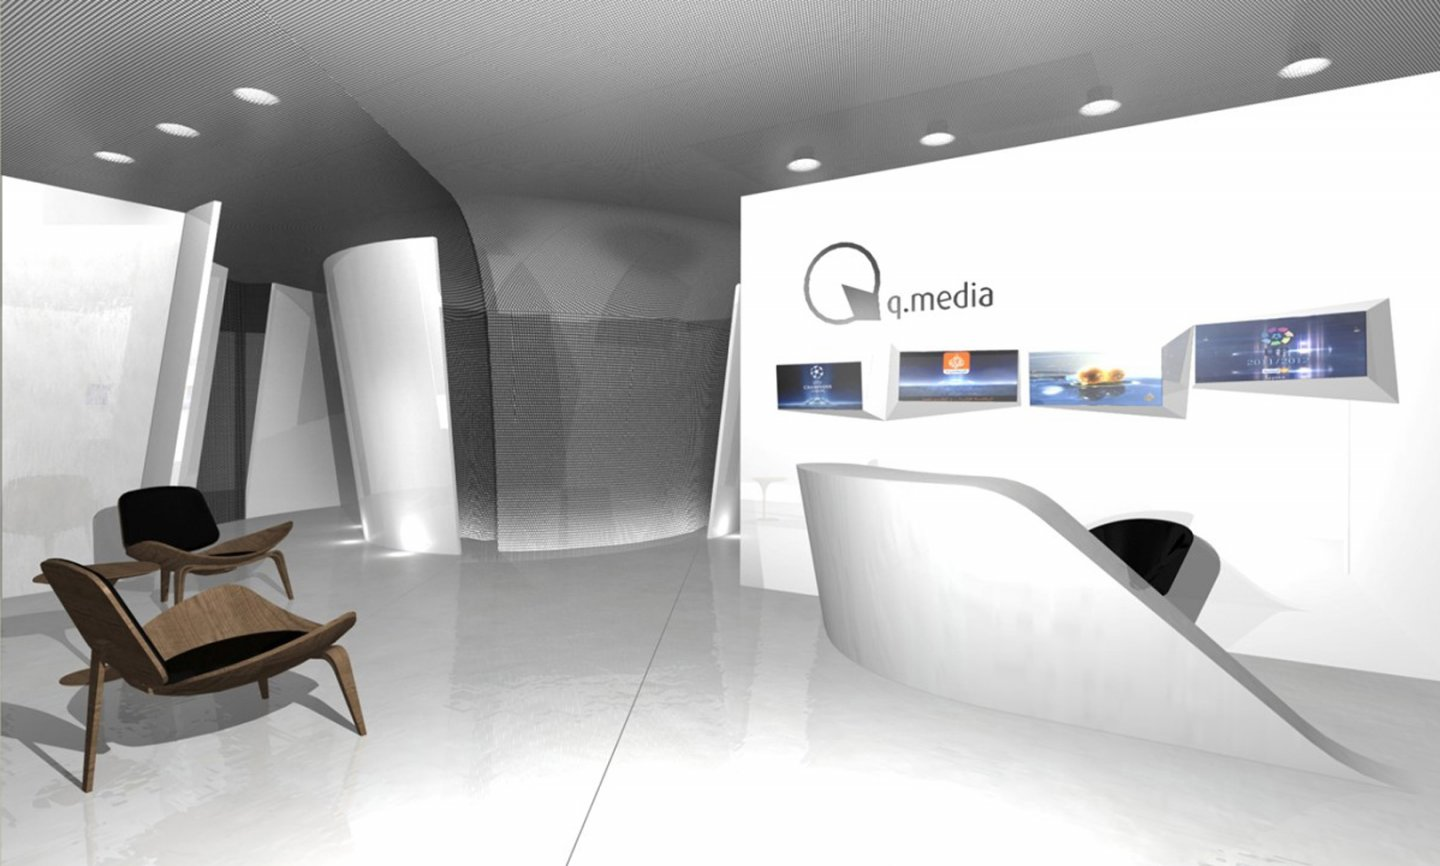 Q Media - project overview image